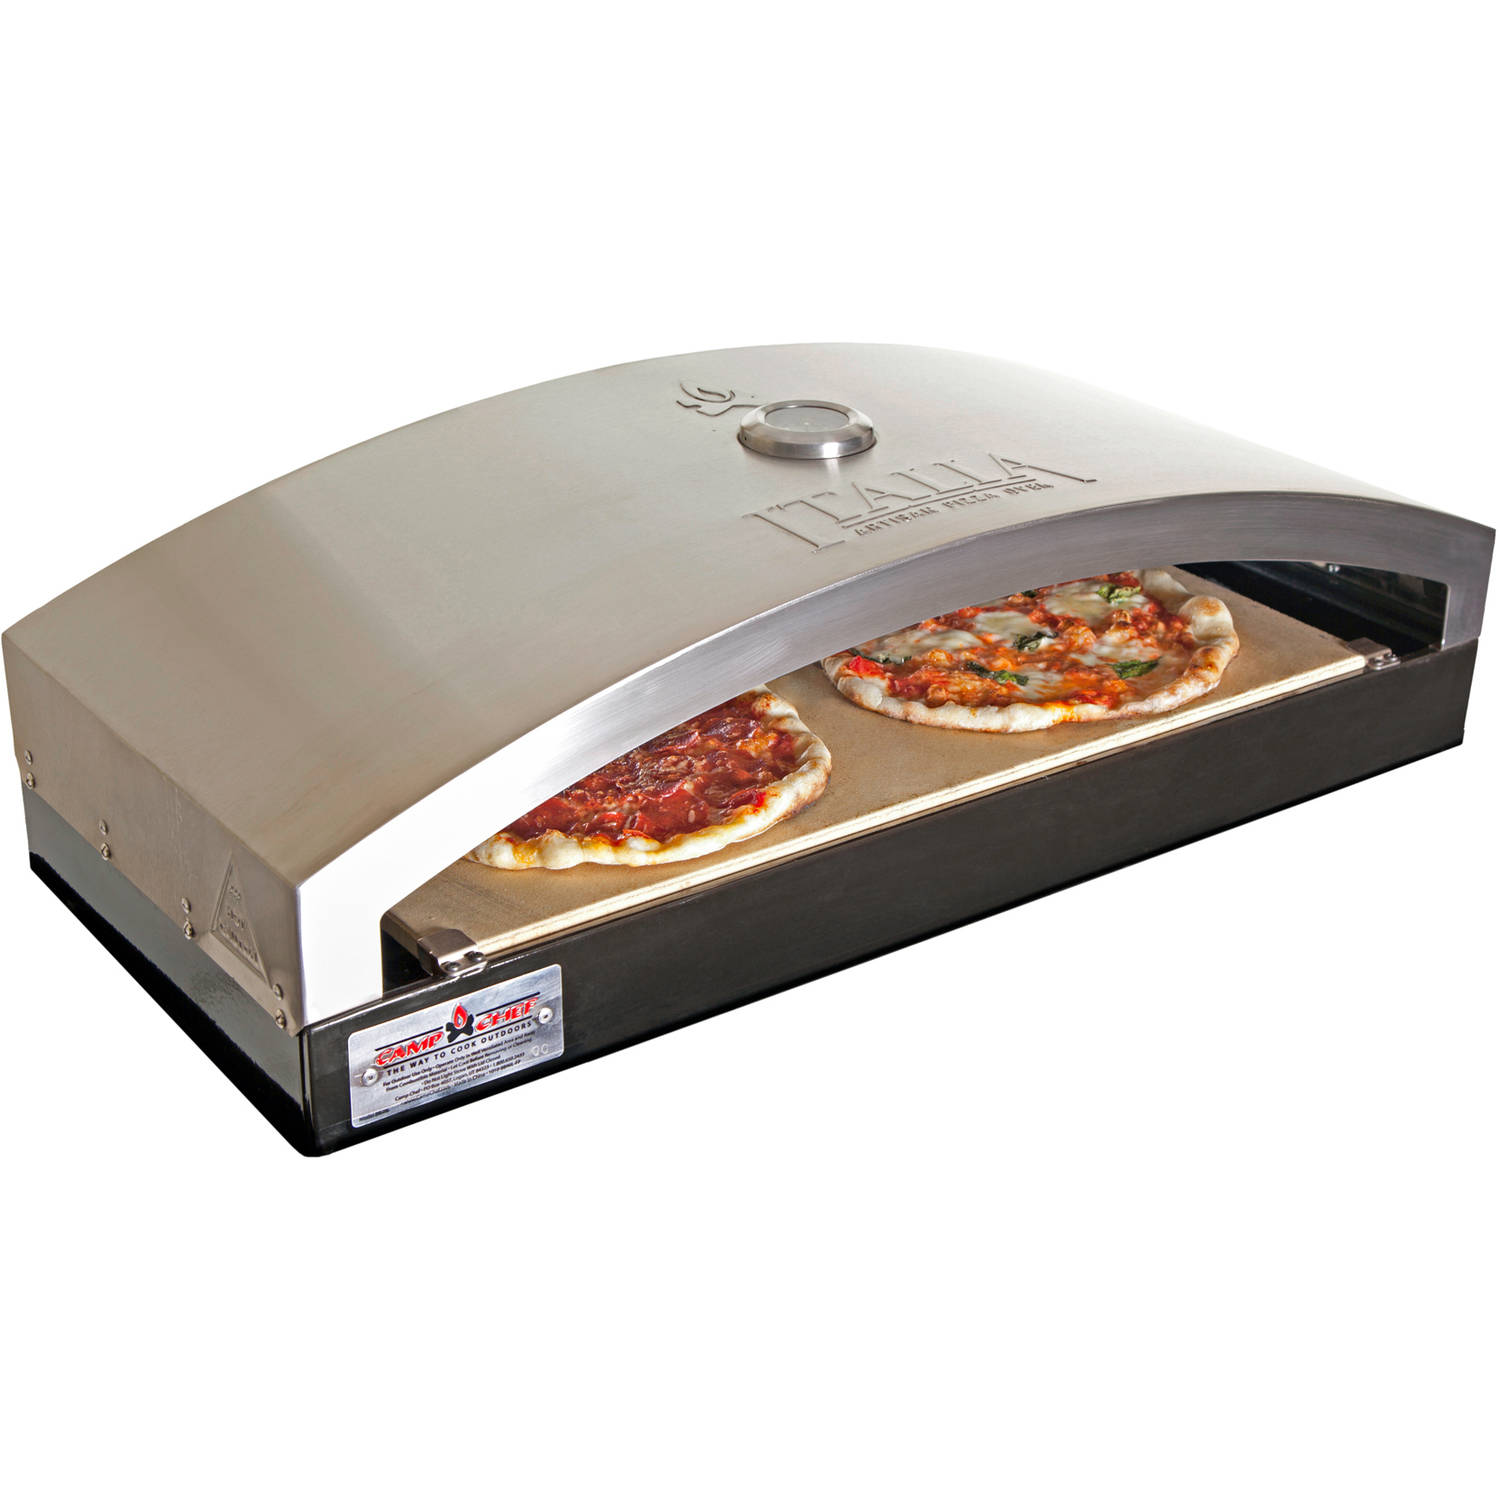 "Camp Chef 14"" Domed Pizza Oven System with Built-in Temperature Gauge"